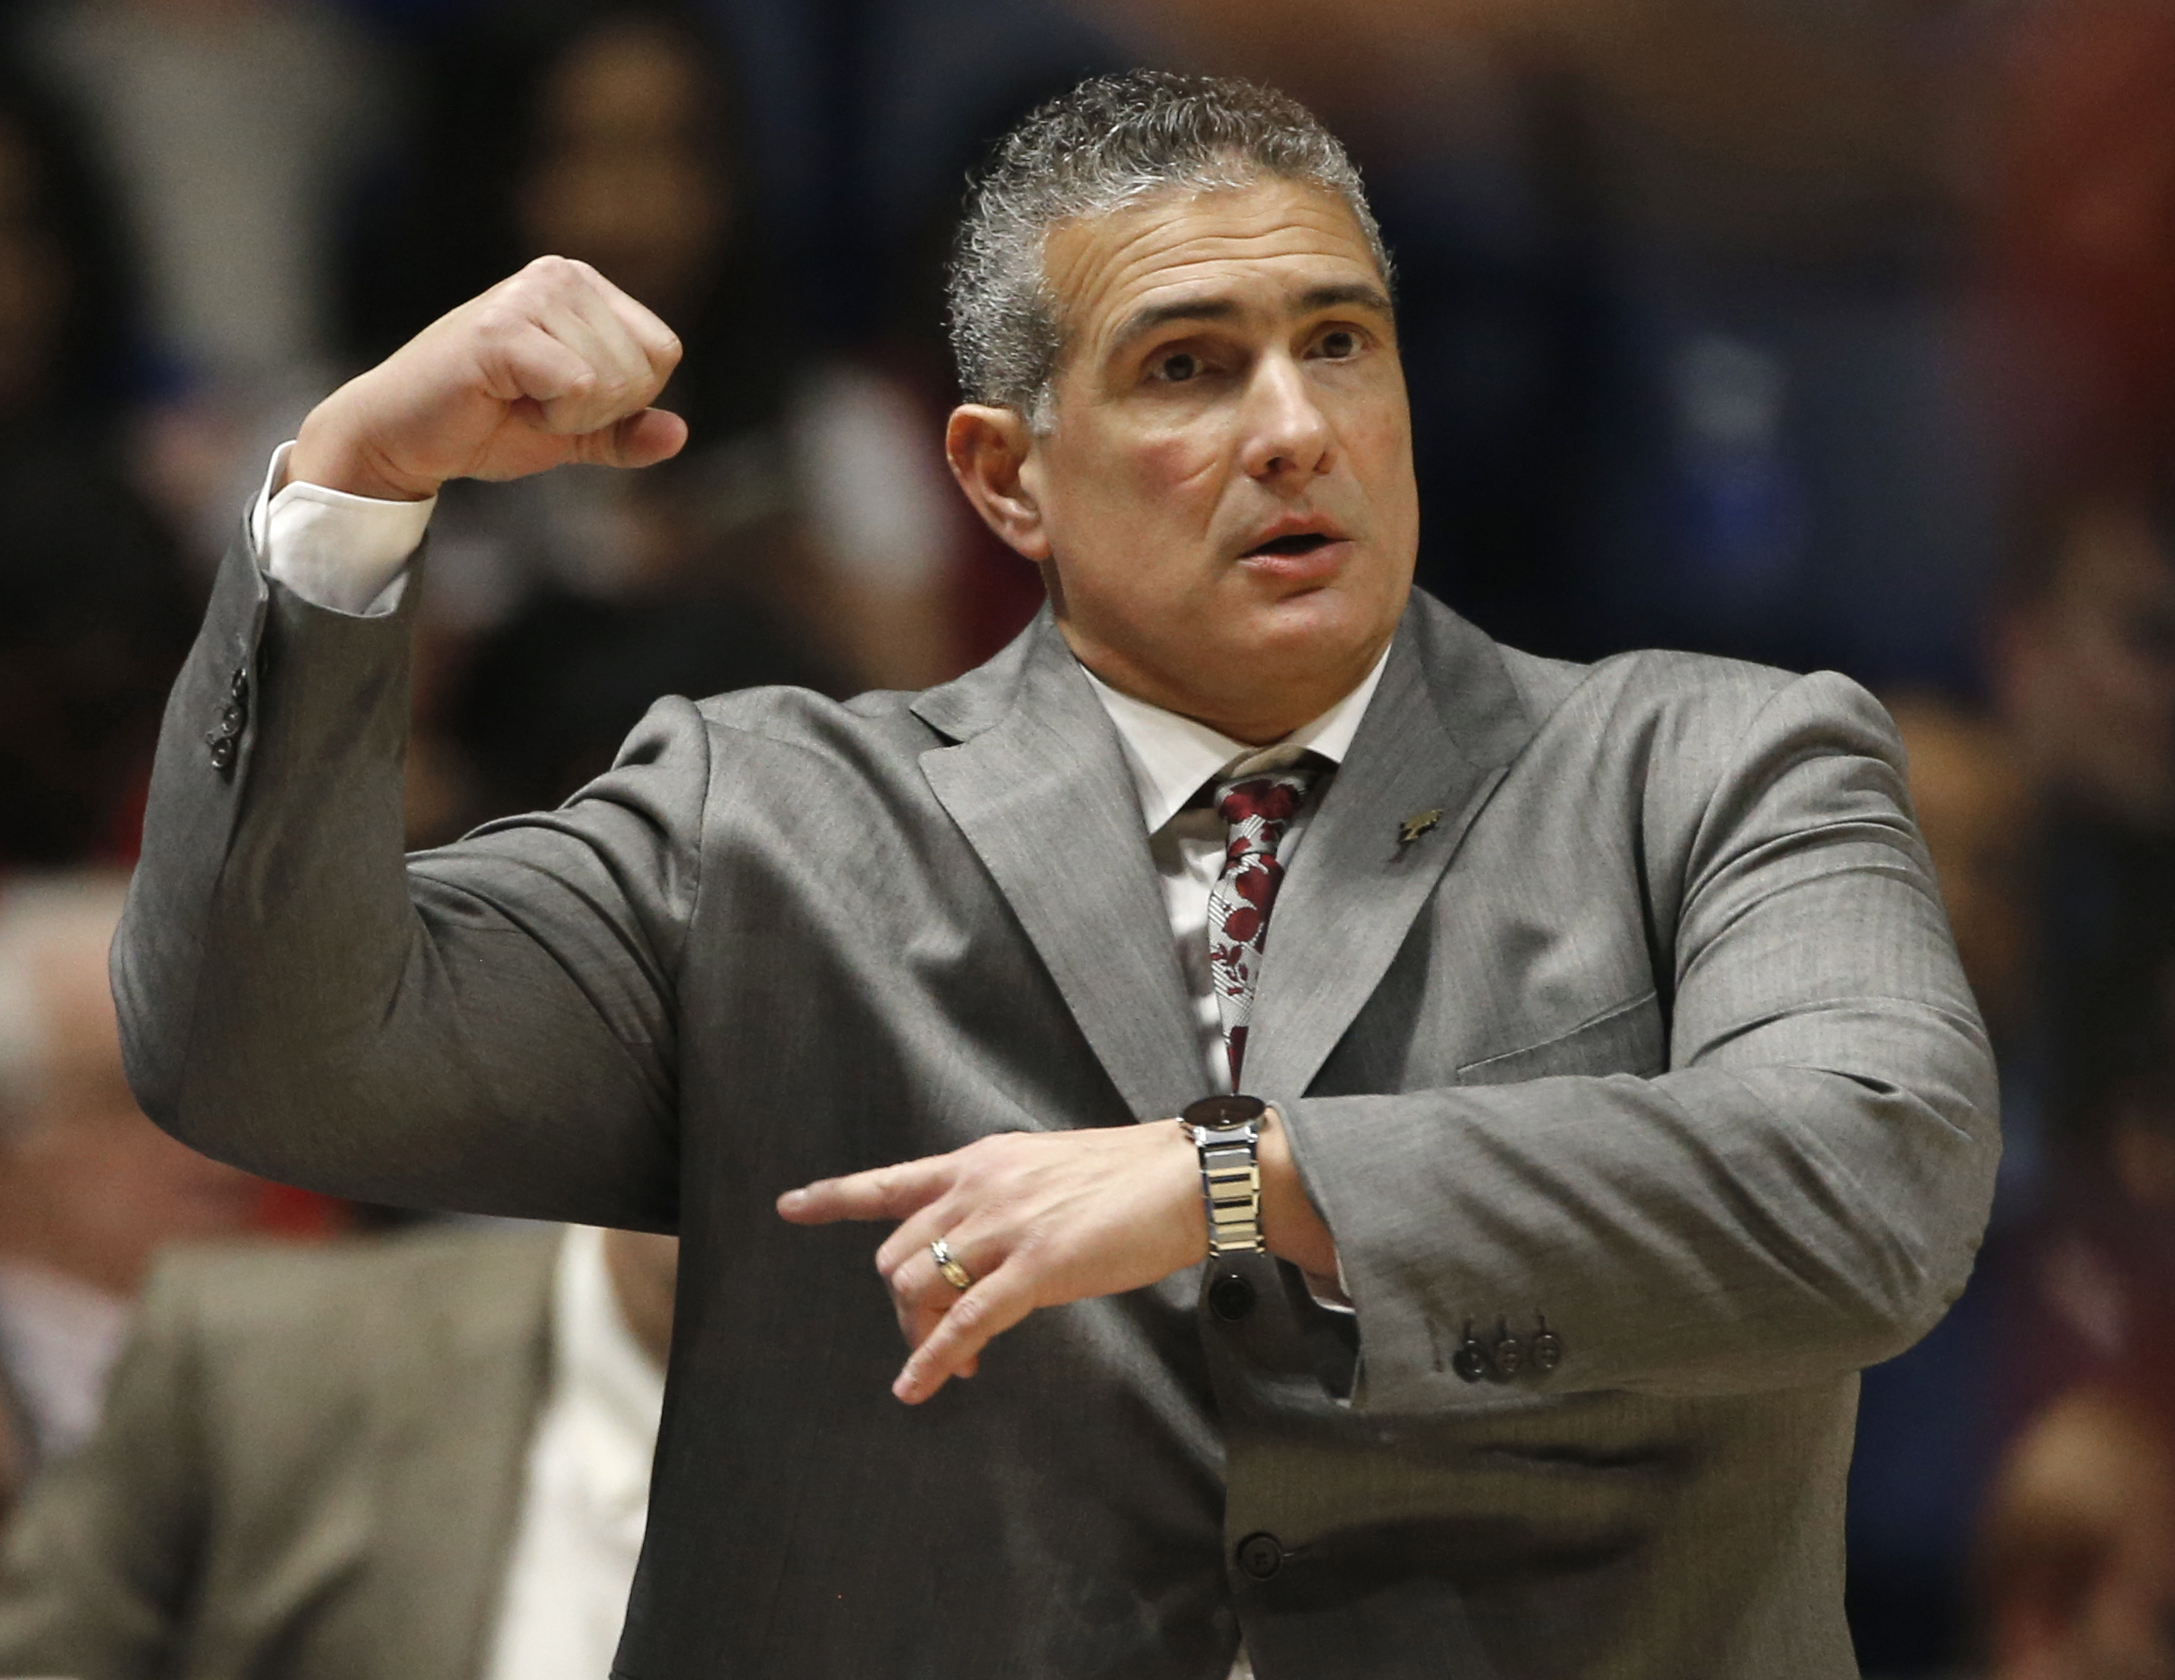 South Carolina head coach Frank Martin directs his team against Georgia during the first half of an NCAA college basketball game in the Southeastern Conference tournament in Nashville, Tenn., Friday, March 11, 2016. (AP Photo/John Bazemore)